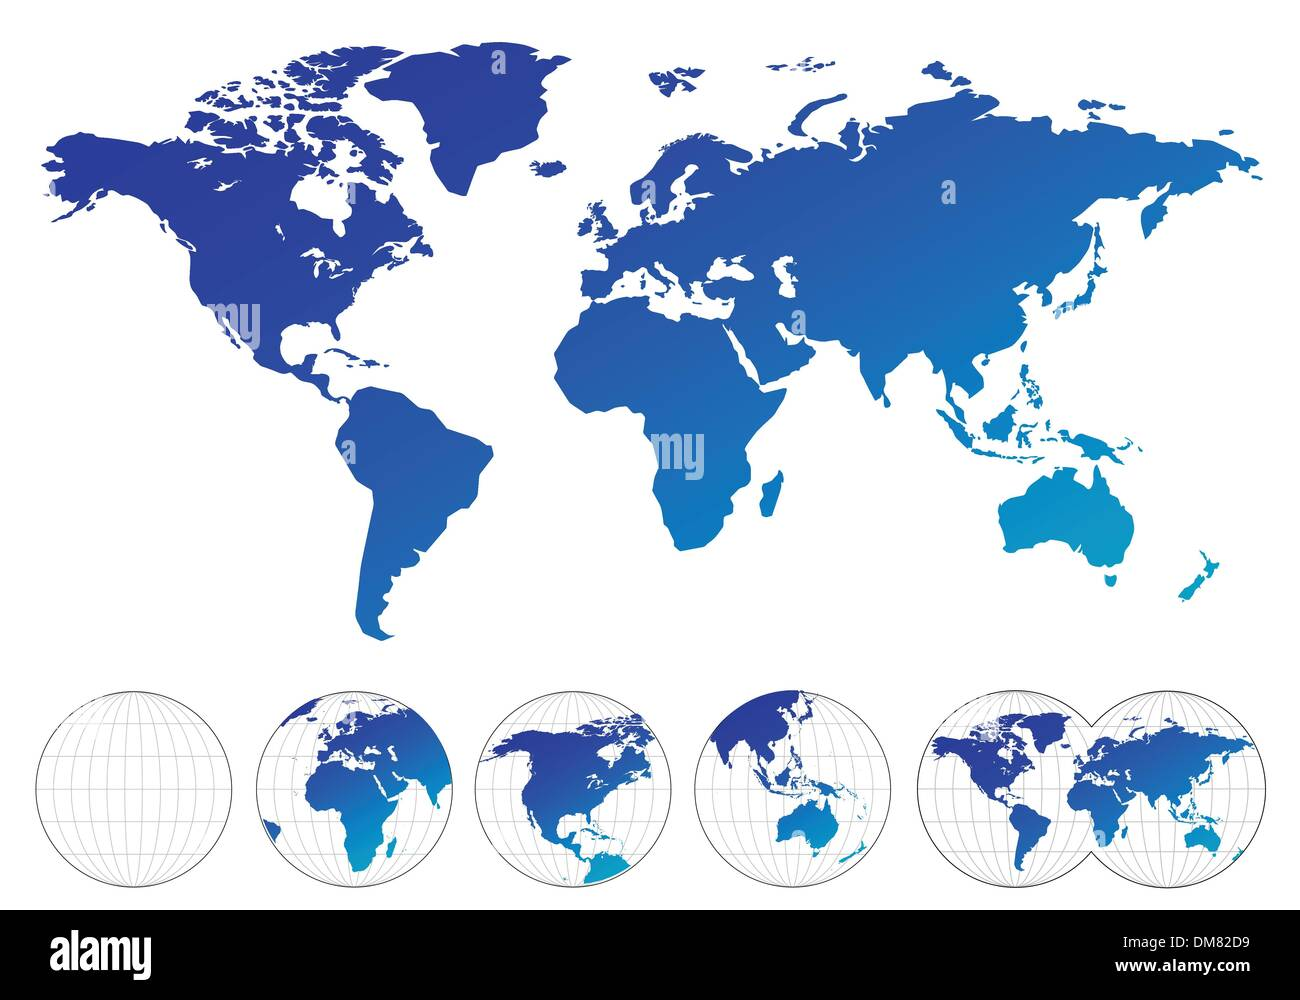 World map - Stock Image